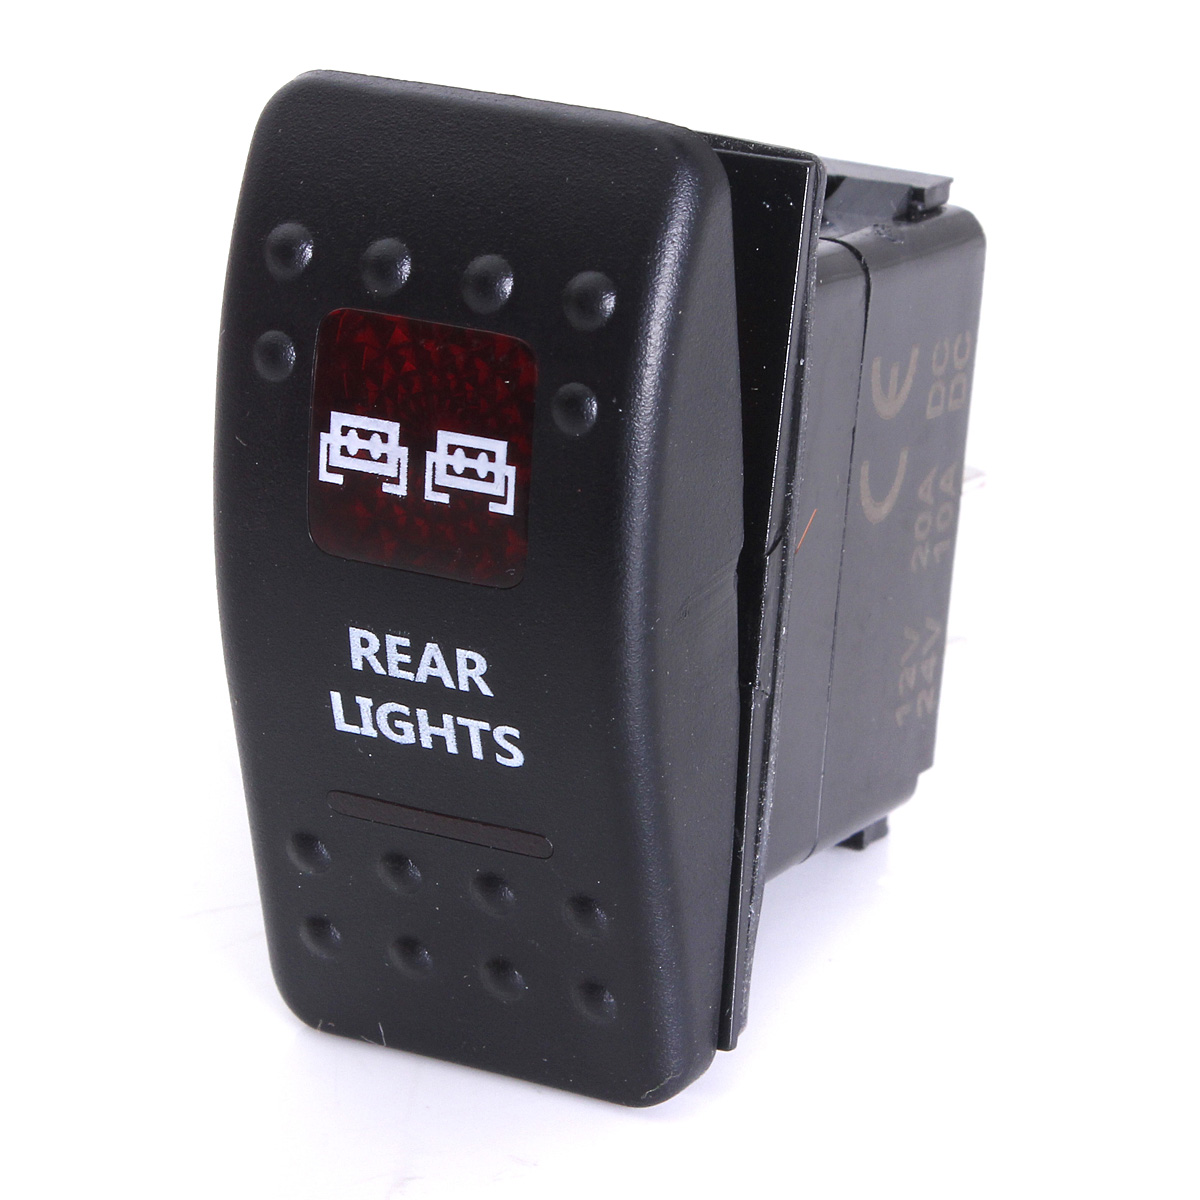 illuminated marine rocker switches pacific ocean food chain diagram car van toggle switch dual led